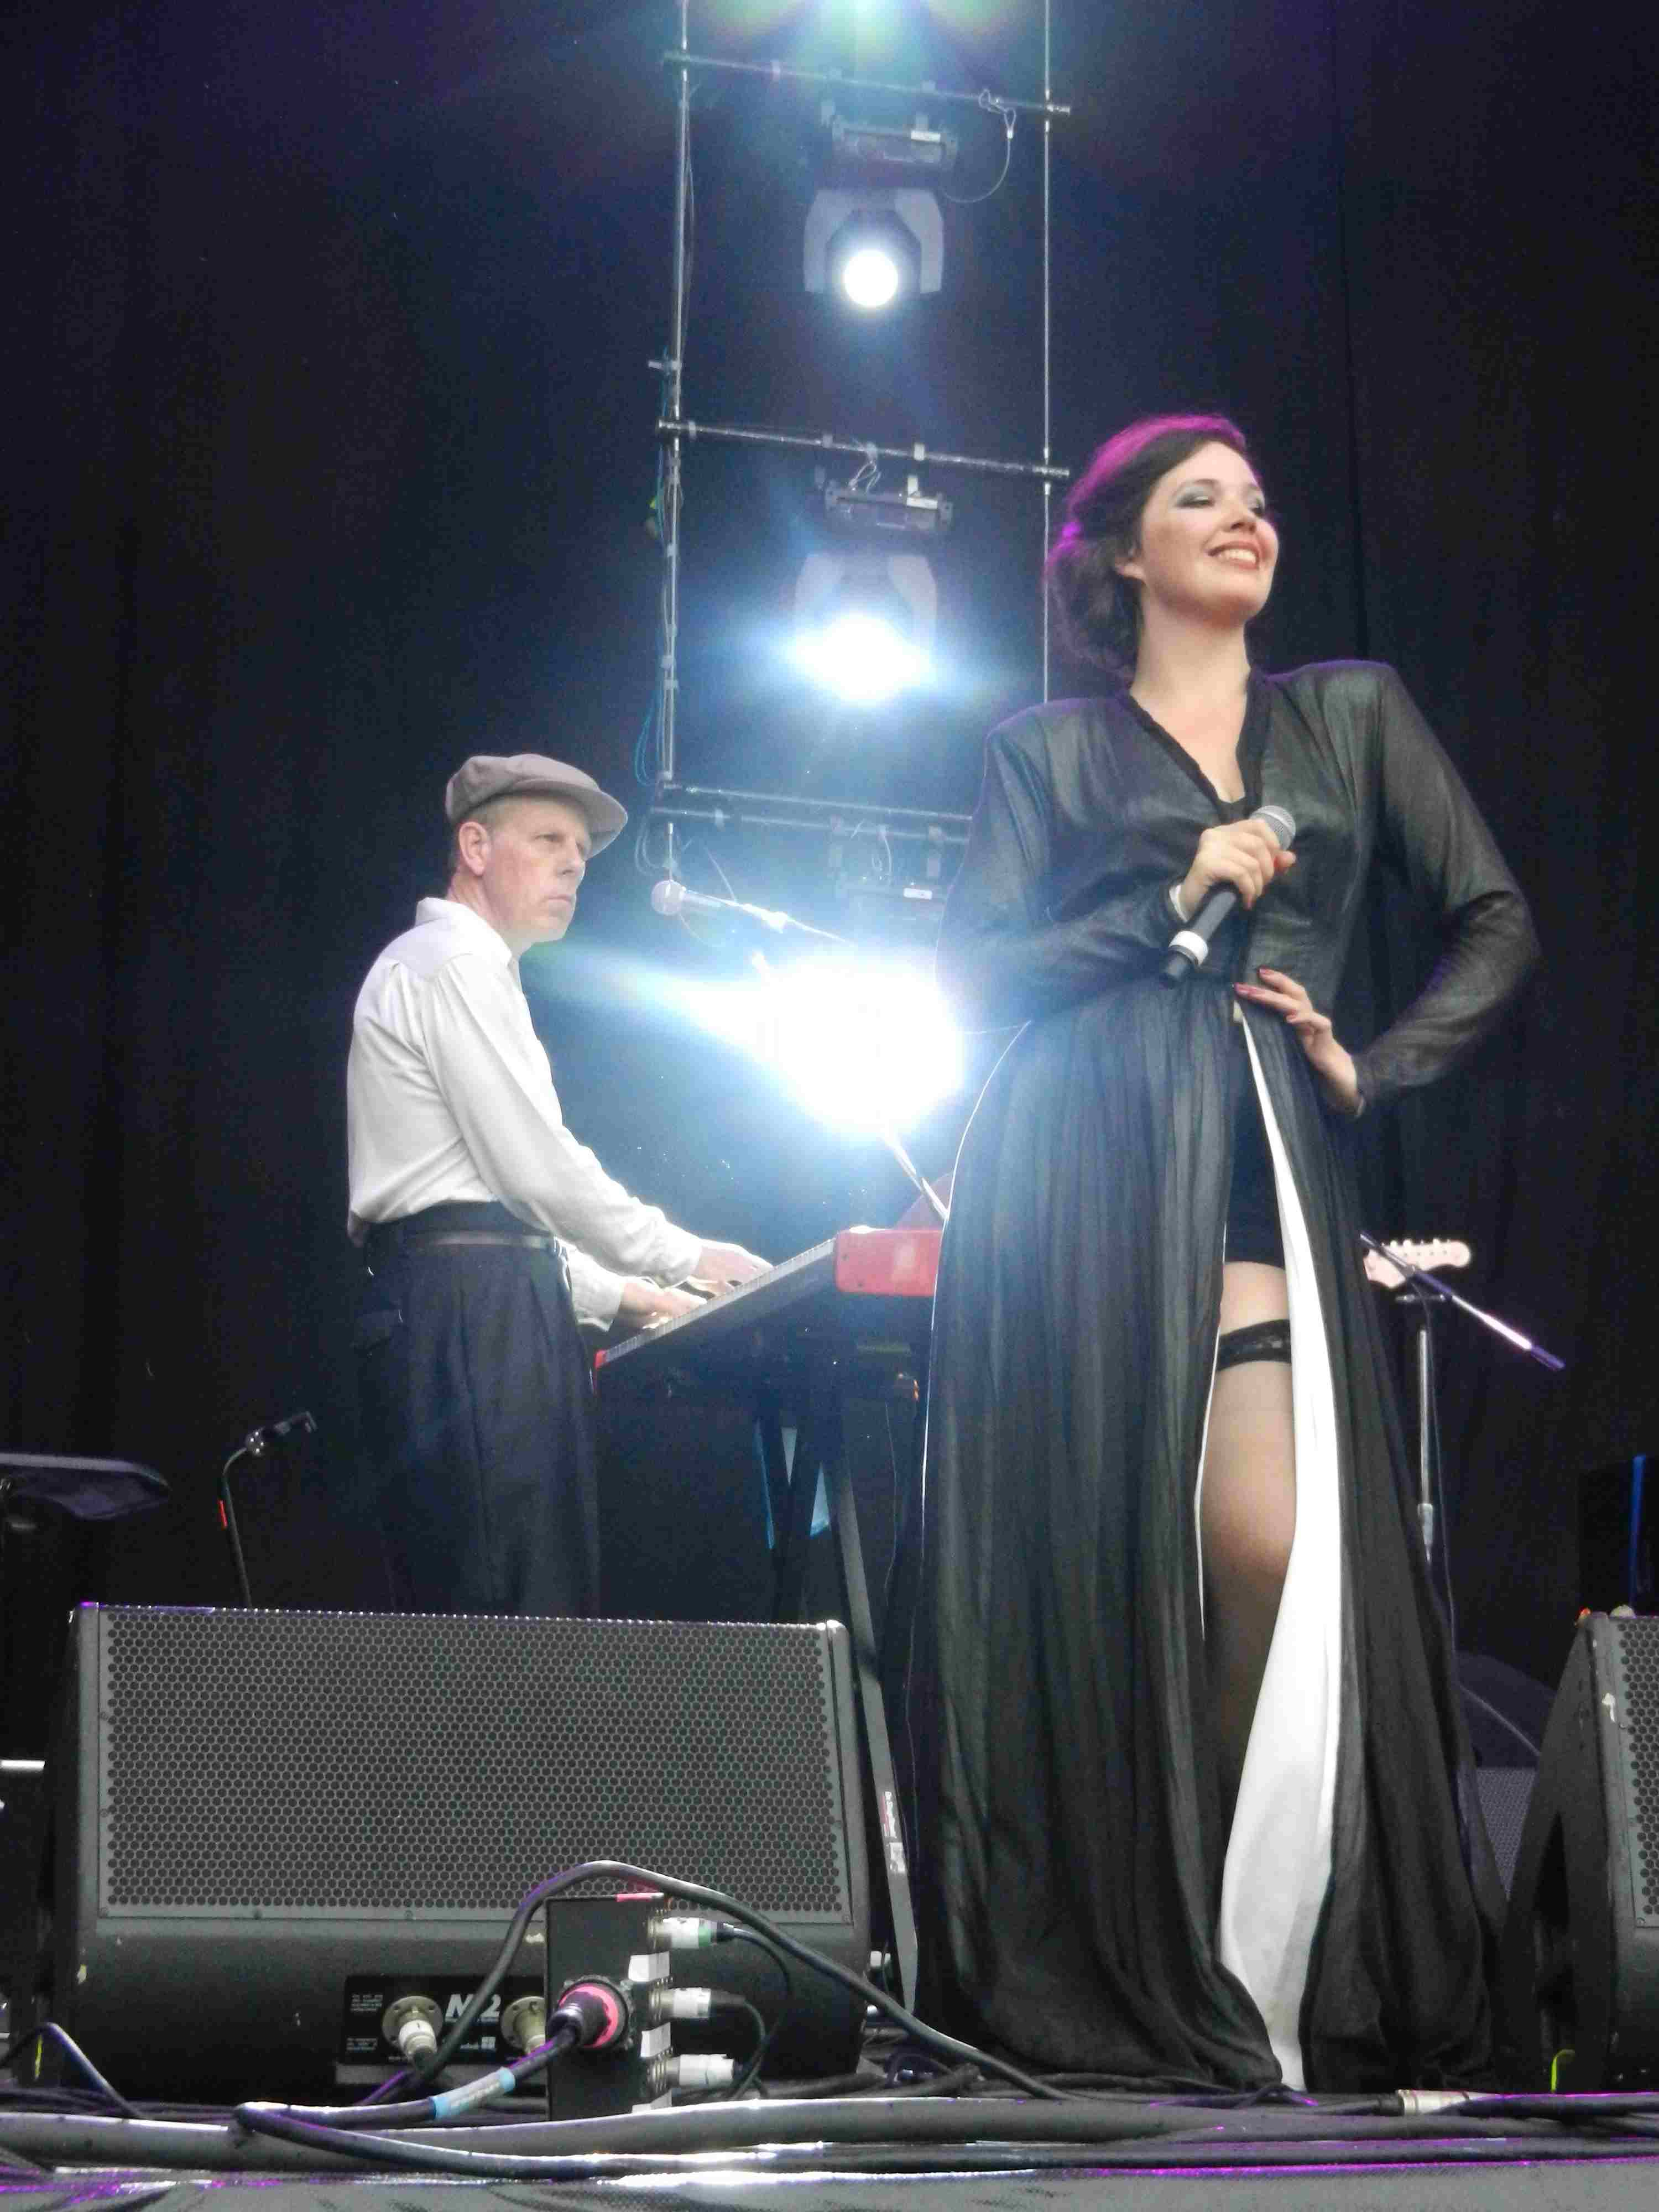 Dexys in Brisbane 2012 (Mick, Maddy)